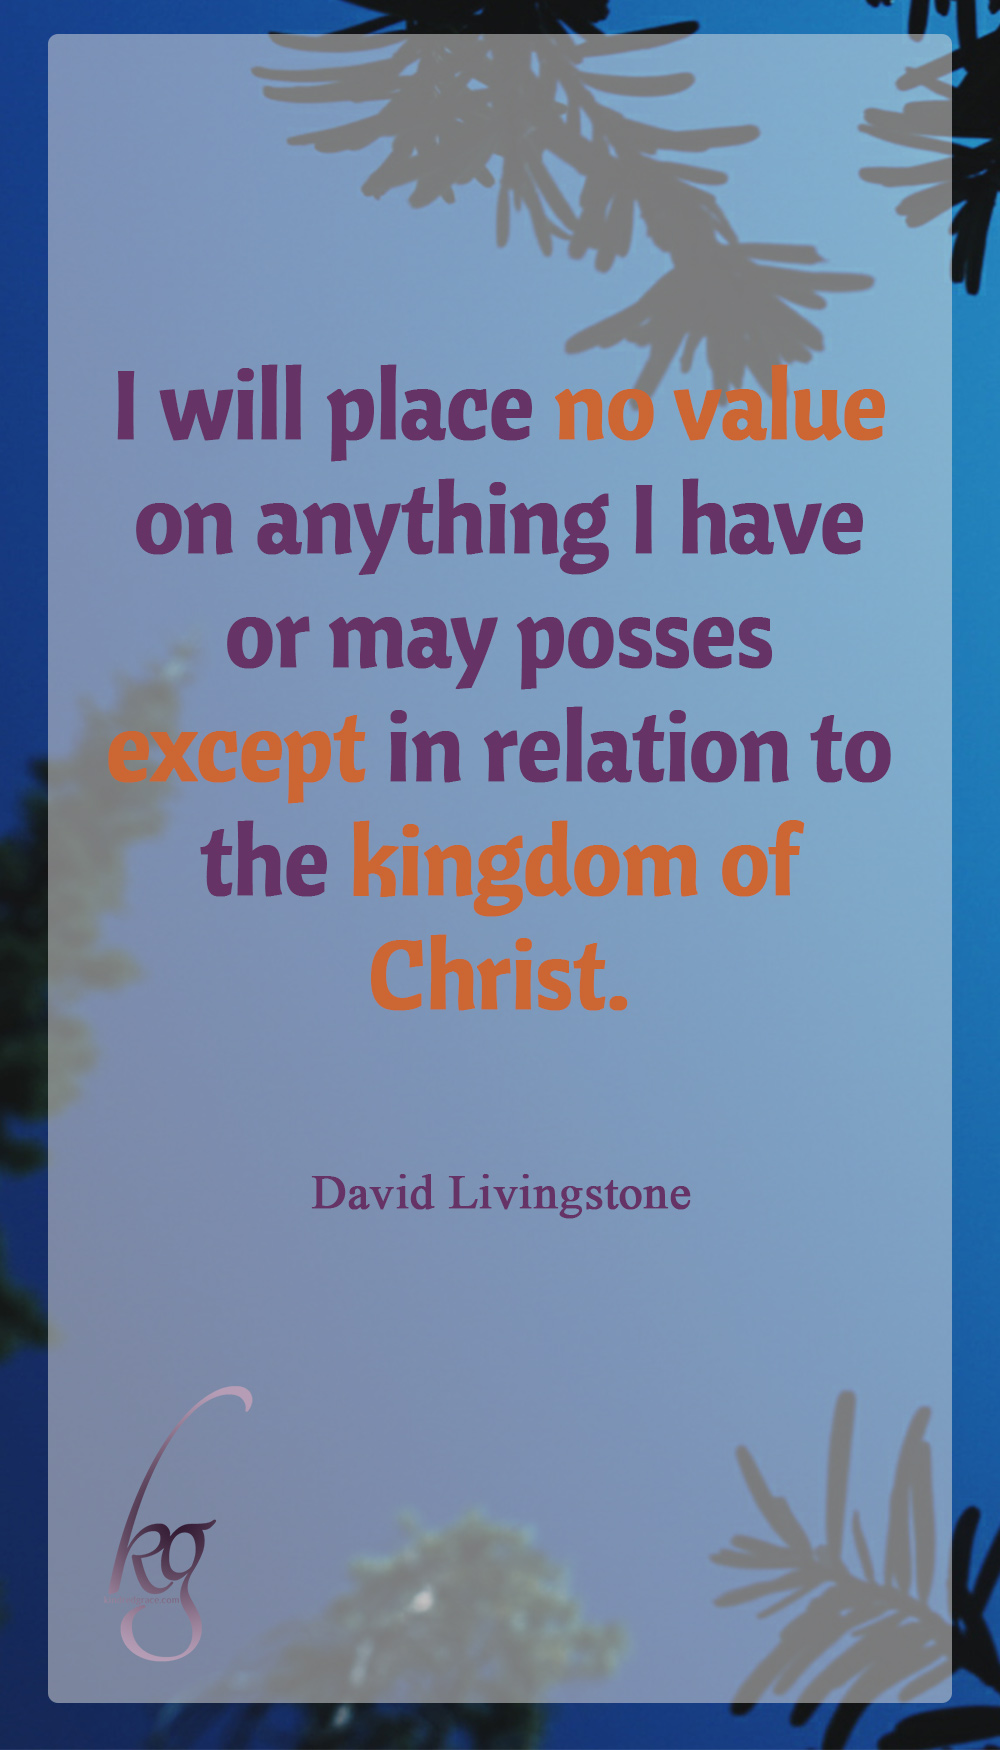 I will place no value on anything I have or may possess except in relation to the kingdom of Christ. (David Livingstone)